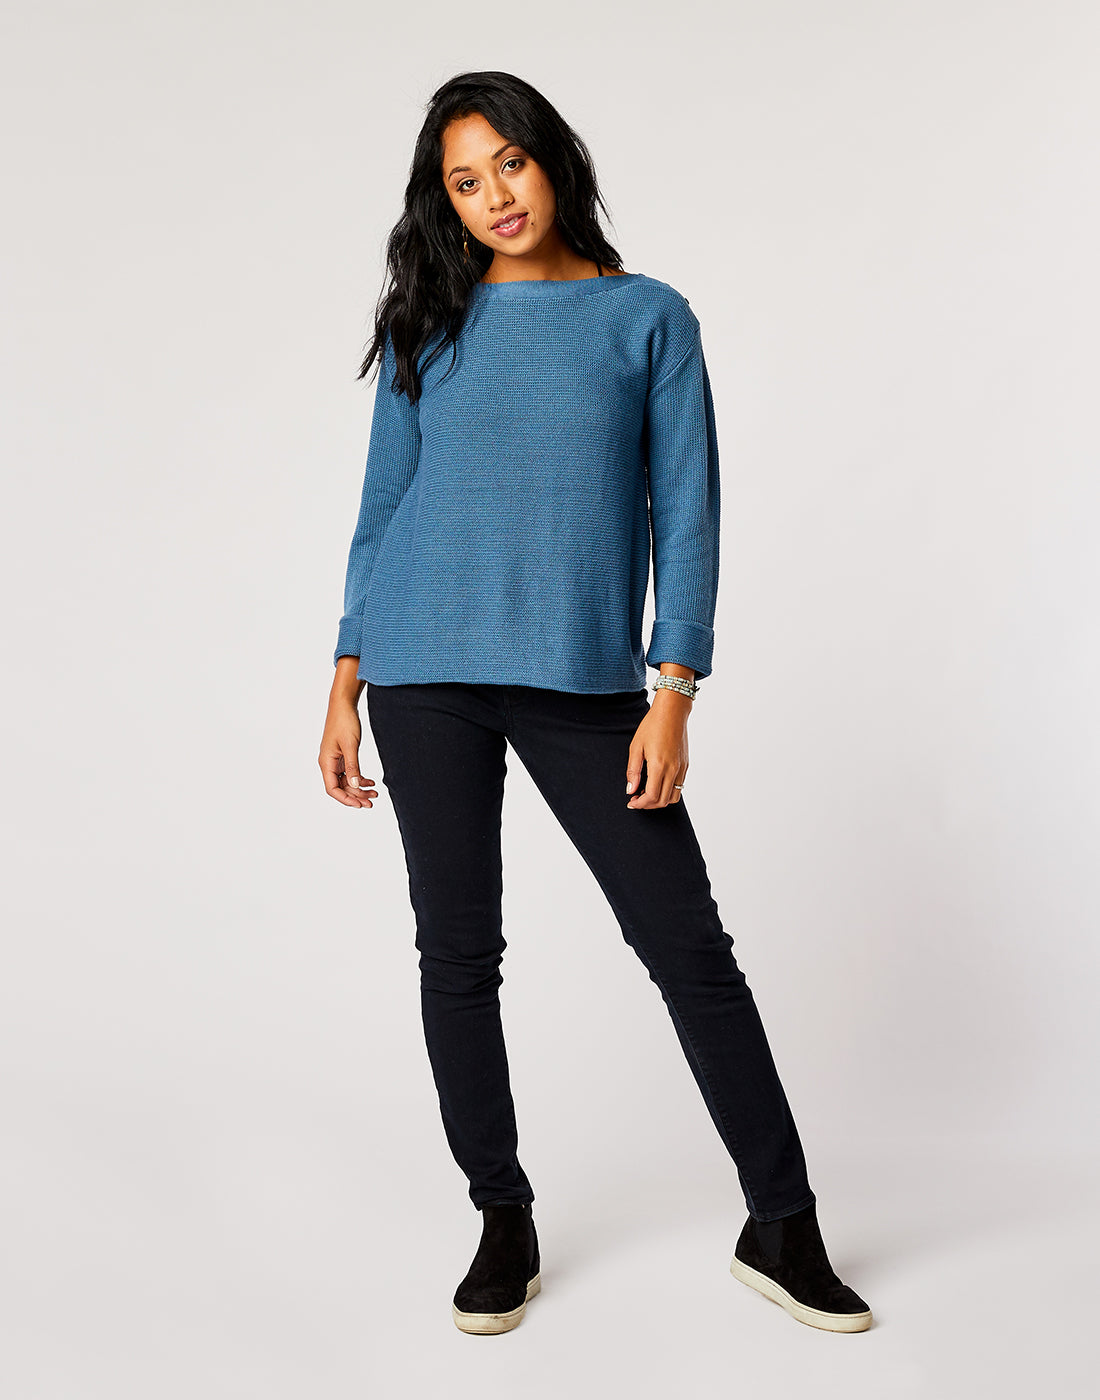 Bandon Sweater: River